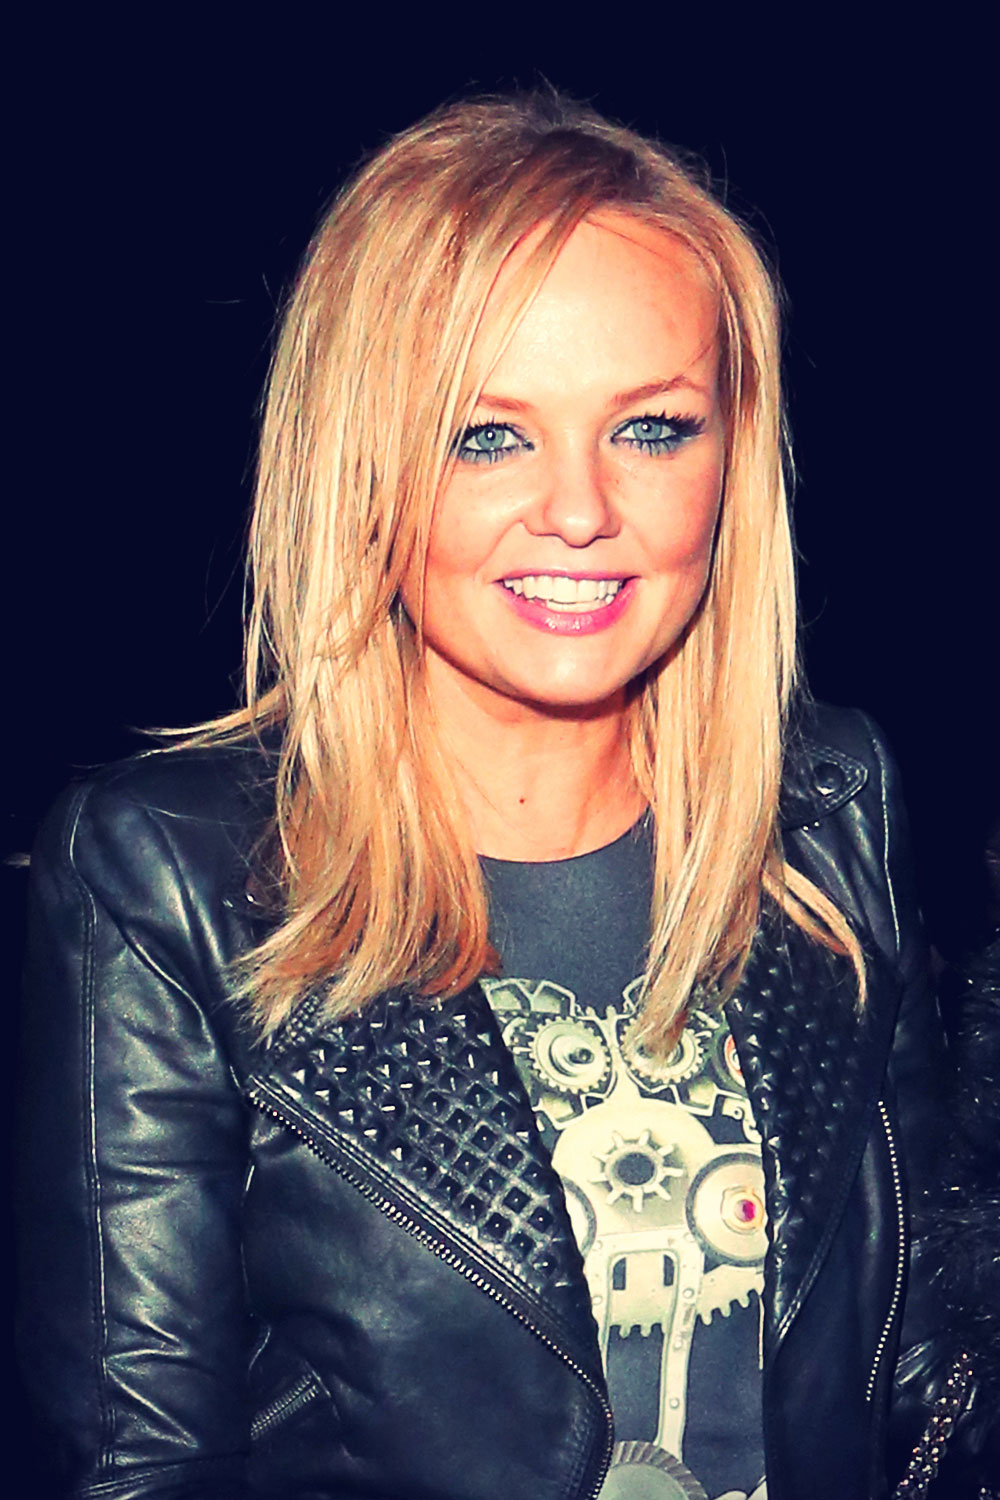 Emma Bunton attends Damage World gig